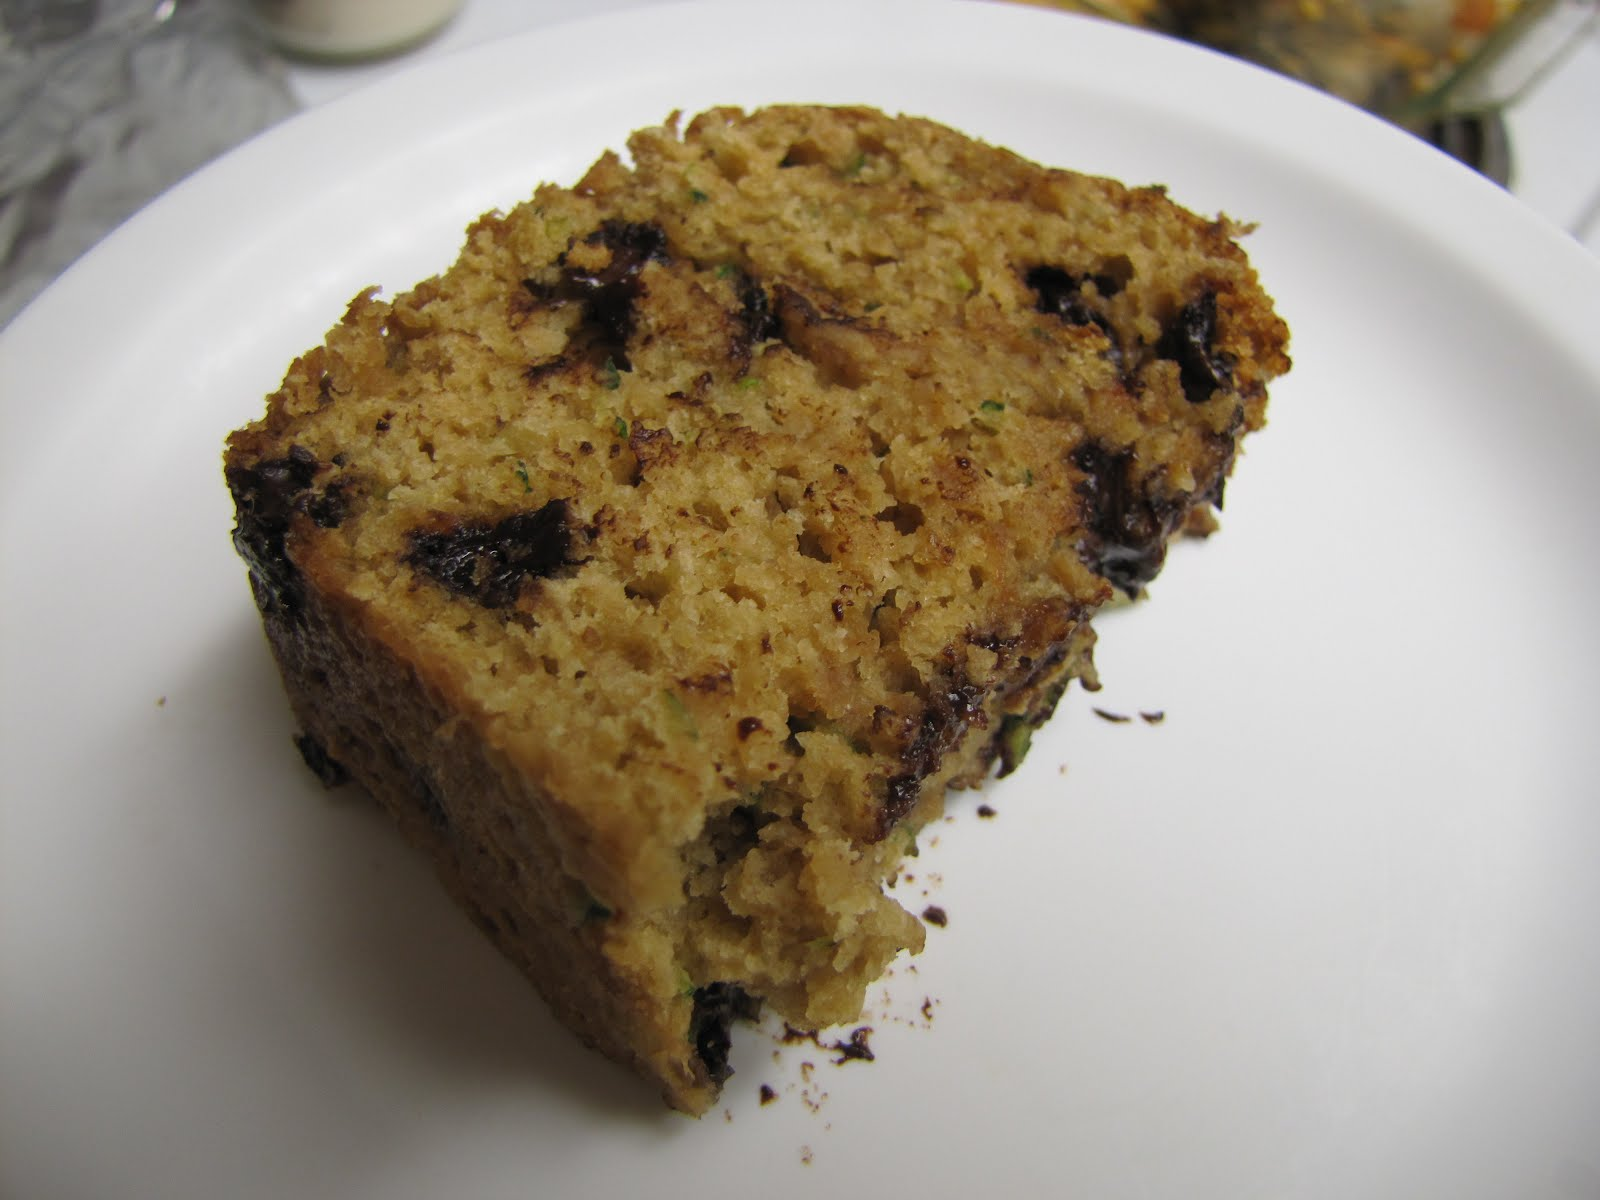 EatYourHeartOut: Low-Fat Chocolate Chip Zucchini Bread